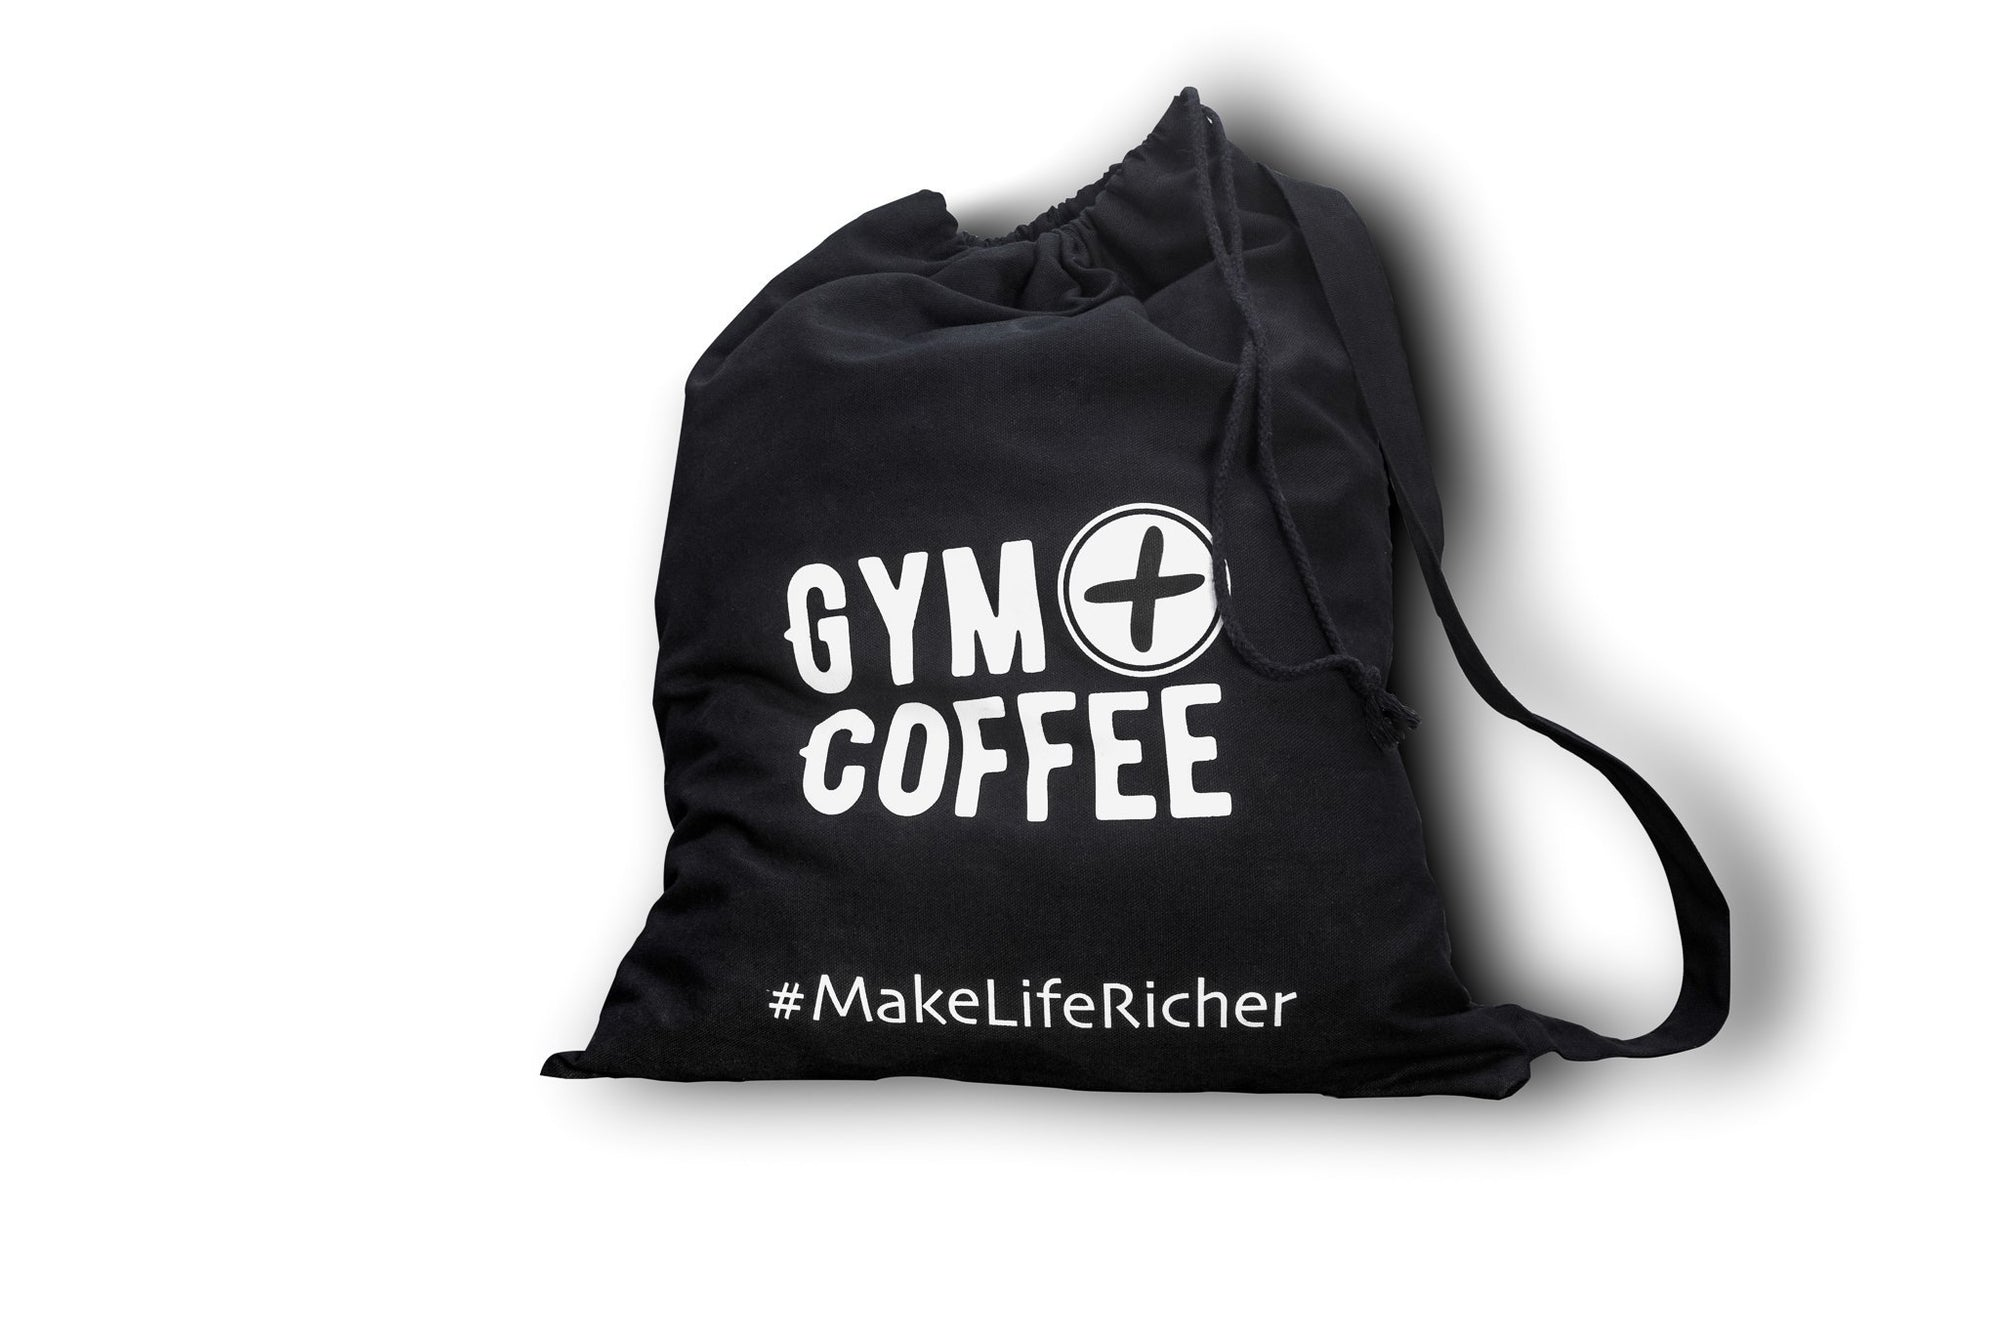 Gym Plus Coffee Water Bottles Gym+Coffee Tote bag Designed in Ireland